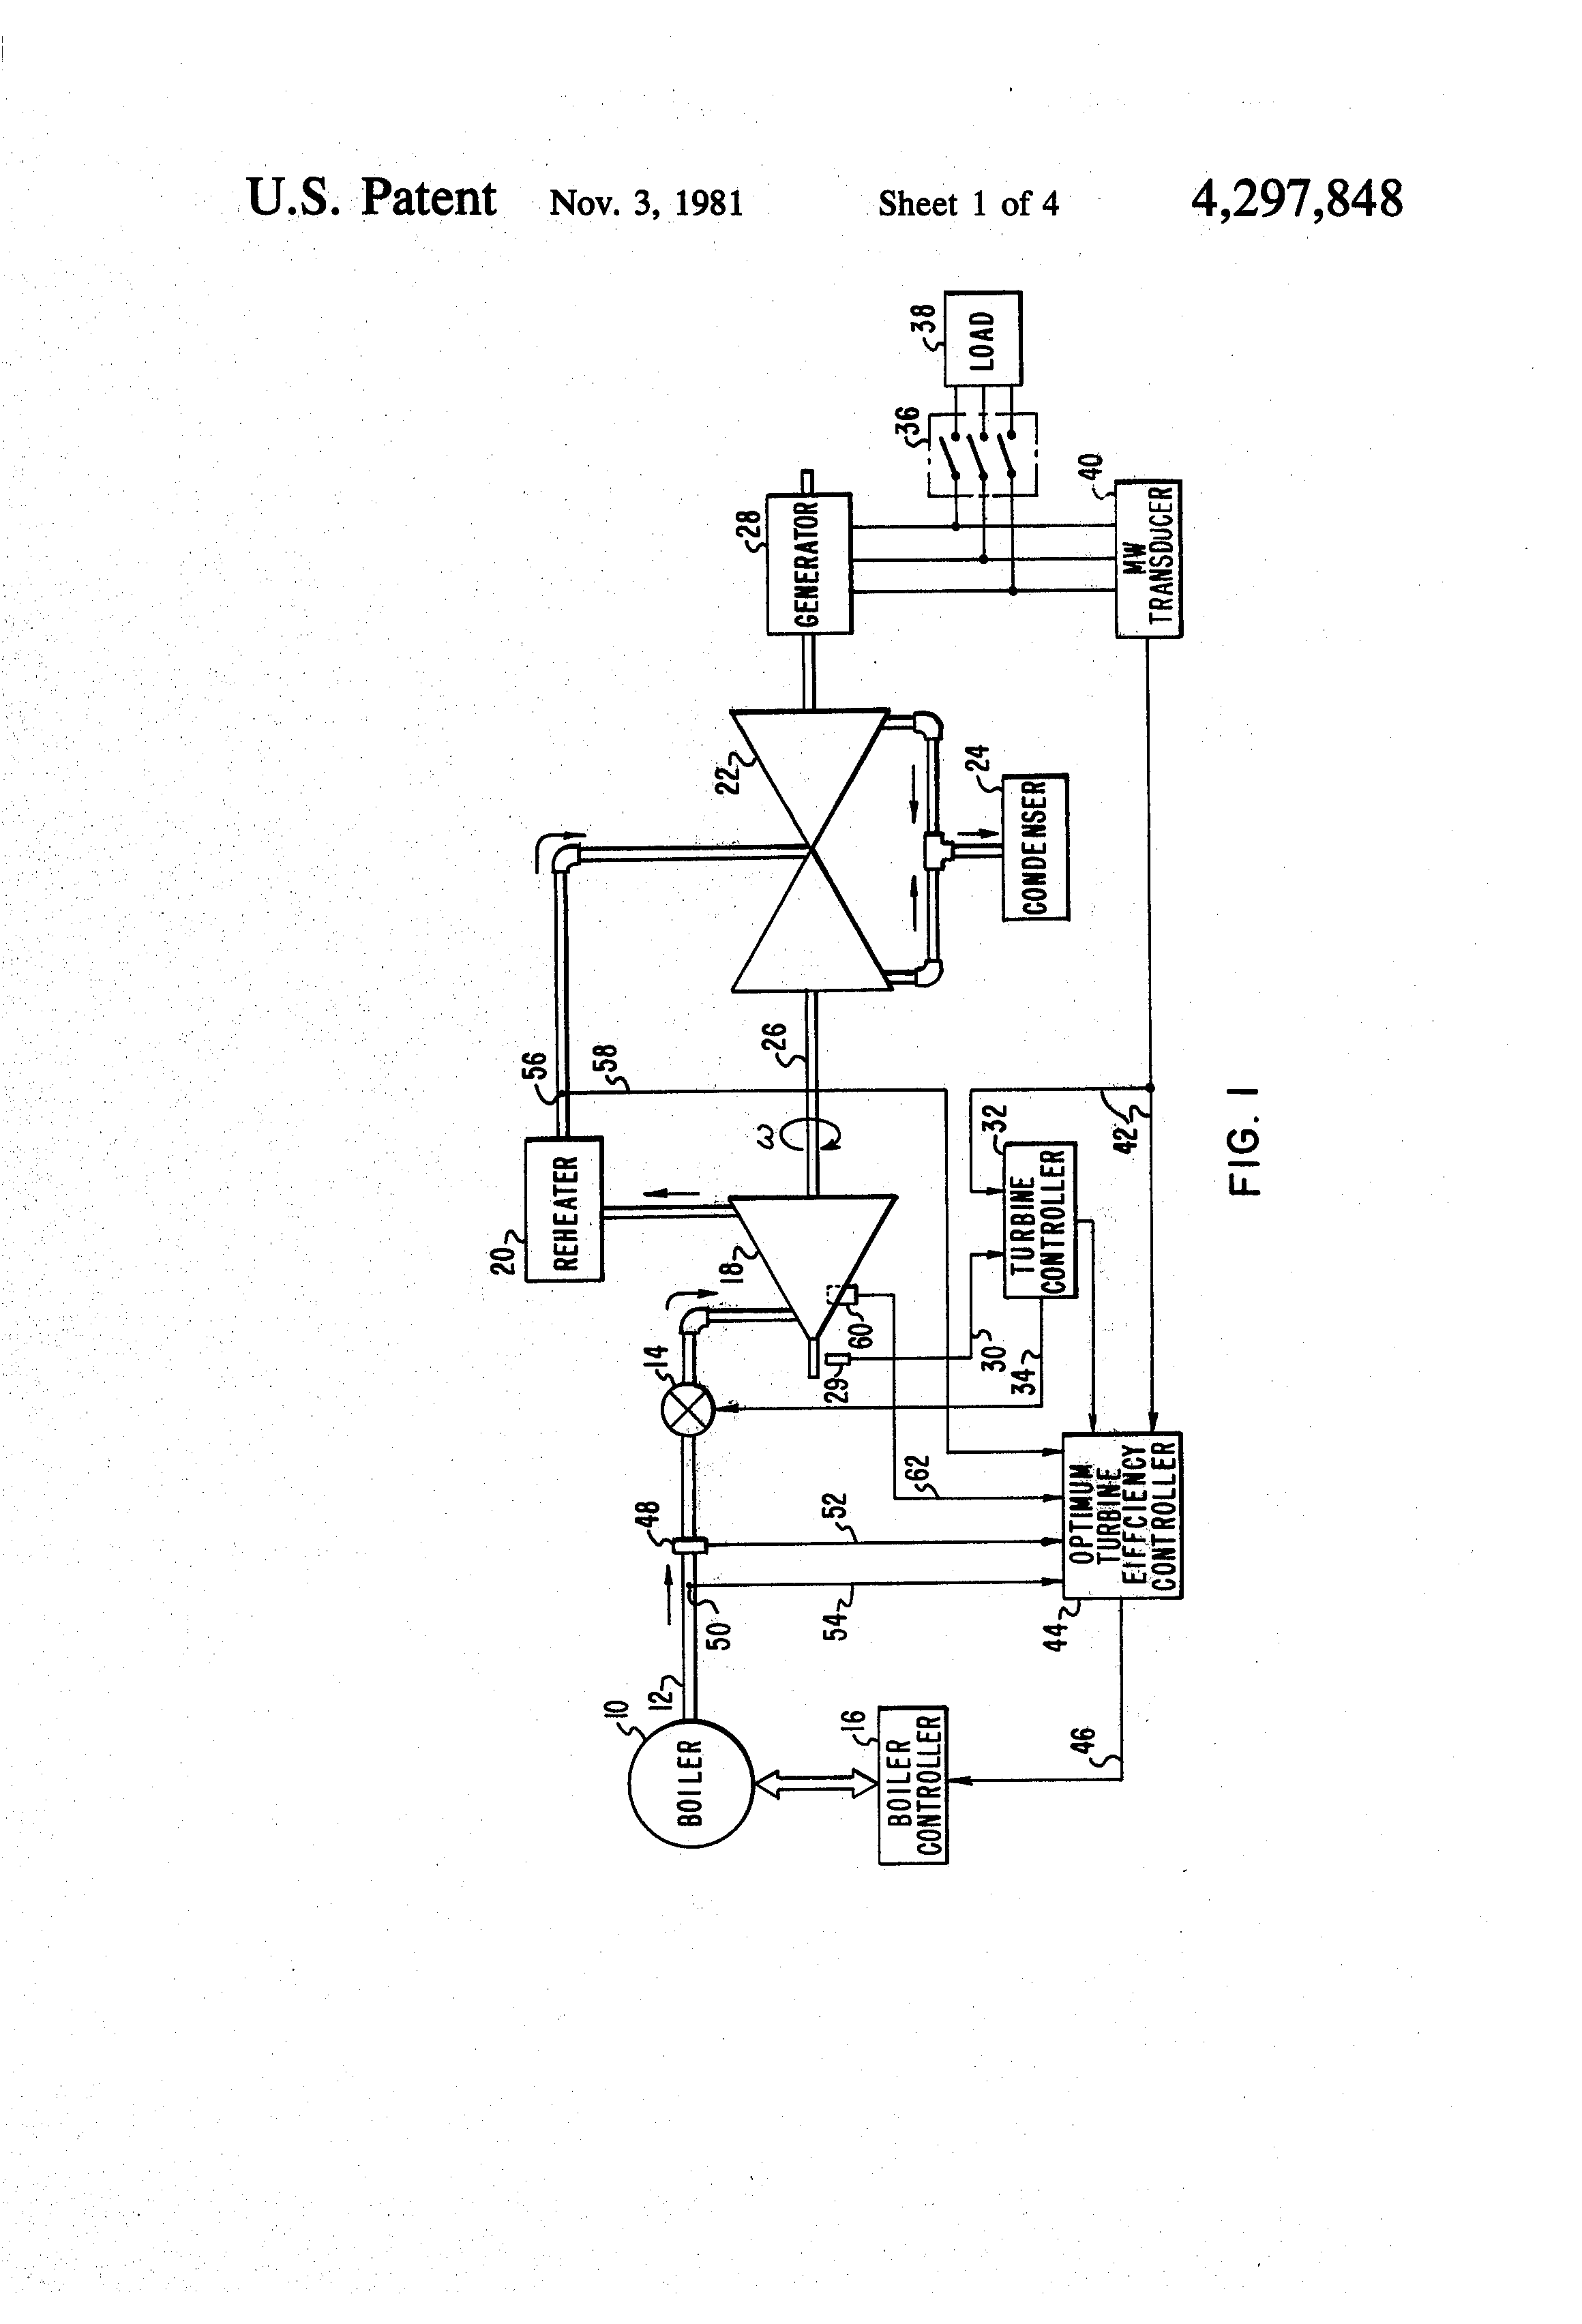 Patent US Method of optimizing the efficiency of a steam